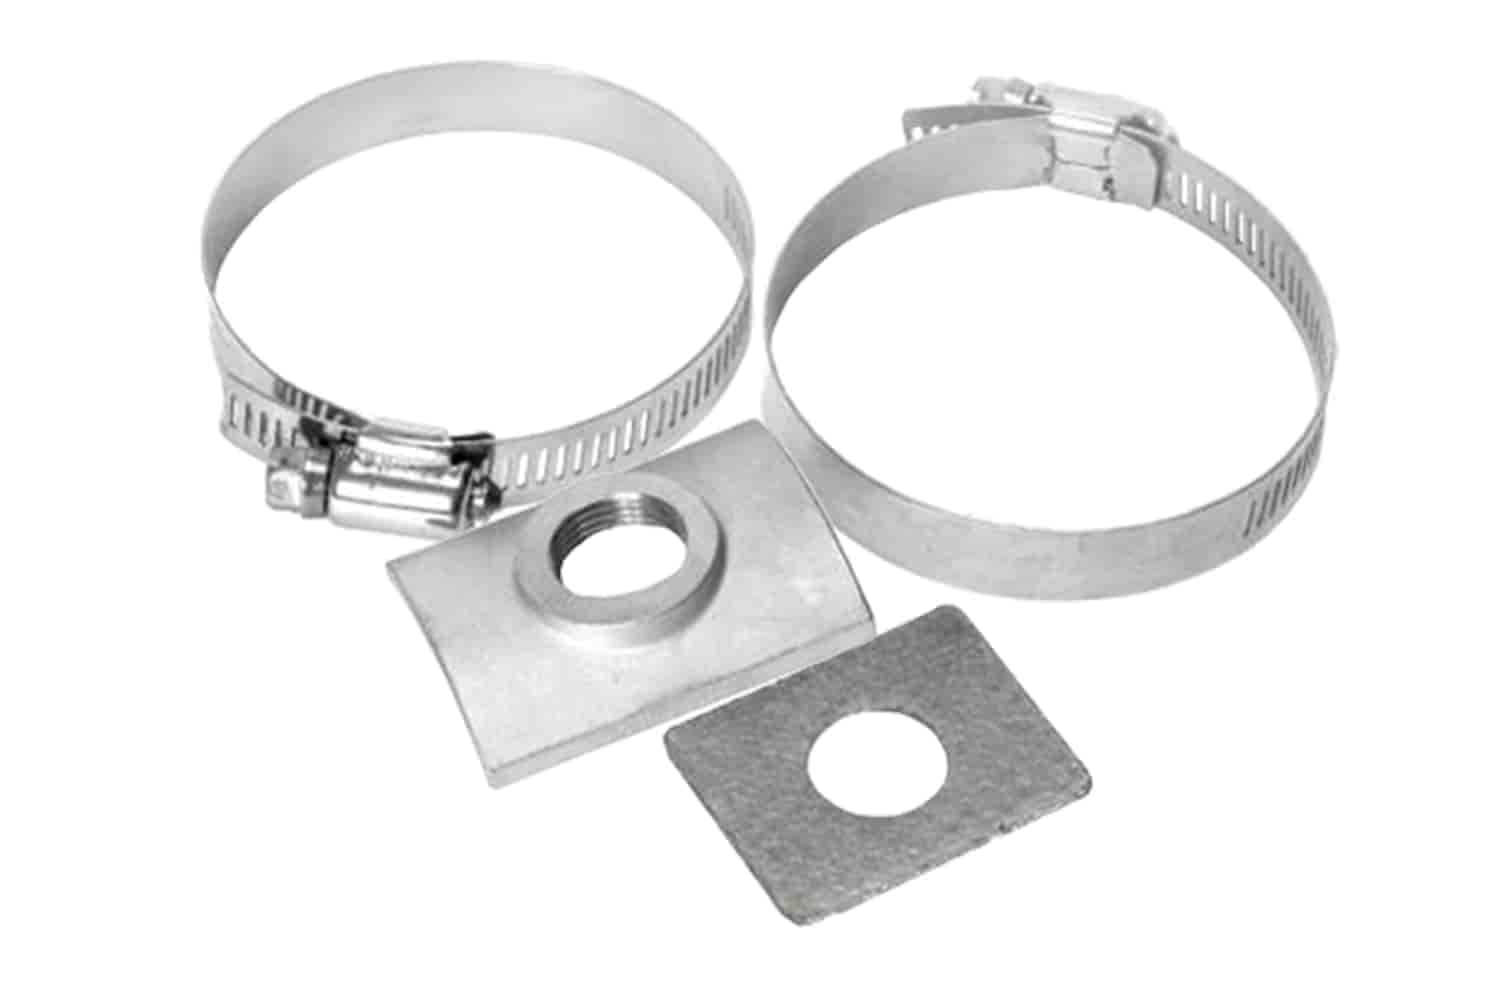 Clamp On O2 Oxygen Sensor Bung Stainless Steel Assembly Kit